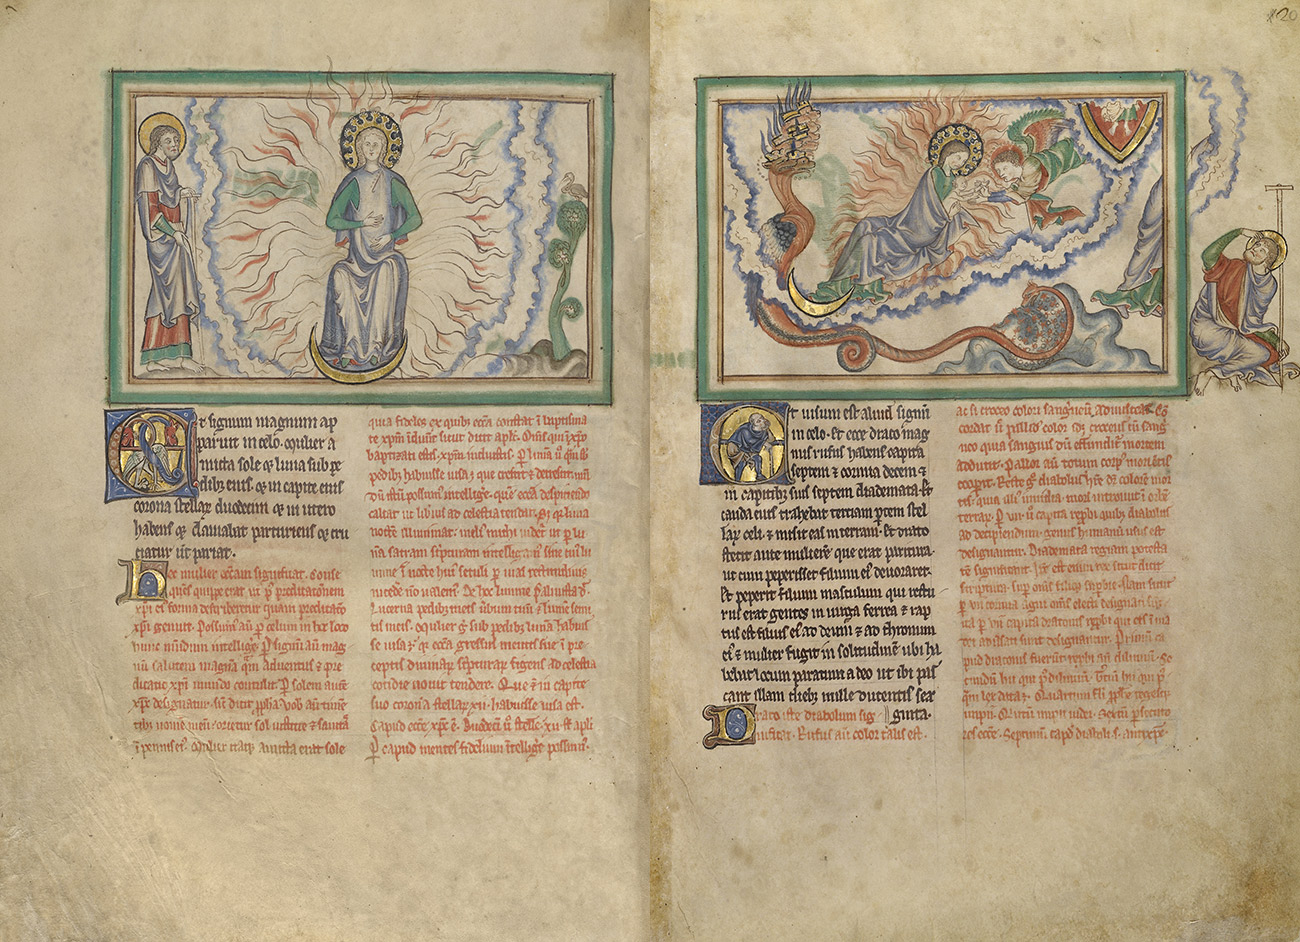 A two-page spread shows, on the left, a seated woman emanating light rays around her body with her feet resting on a gold crescent moon, and on the right, the same woman leans towards a winged figure, away from a red dragon with a long serpent-like tail on the left of the frame.